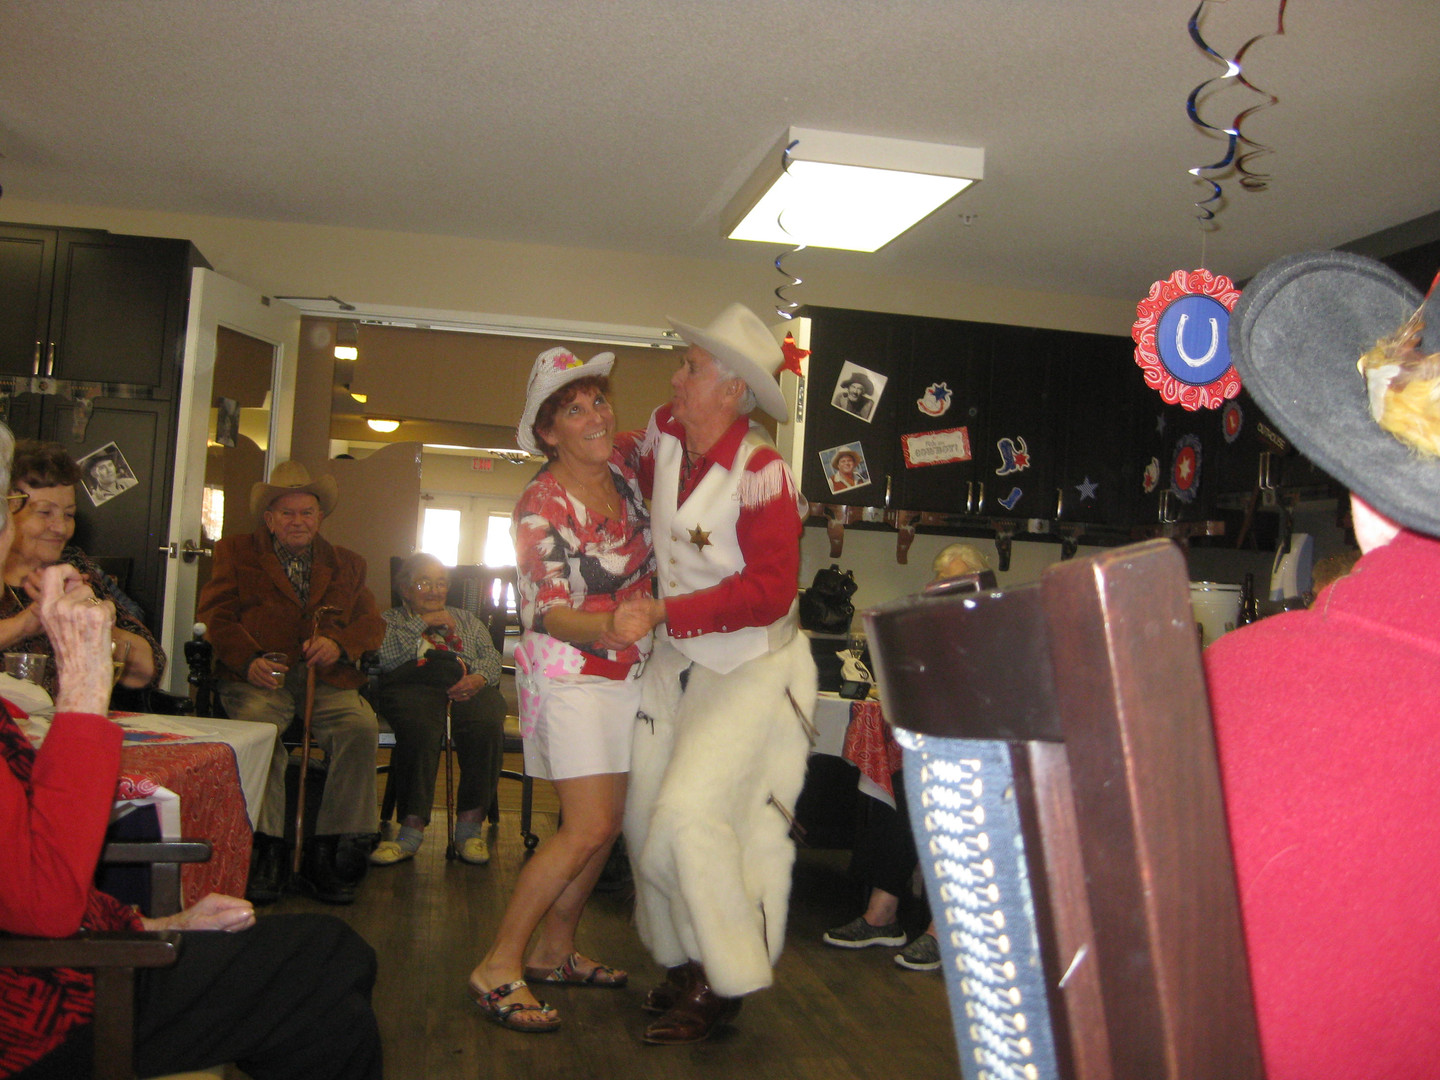 IMG_1927 - Patty & John Dancing.JPG